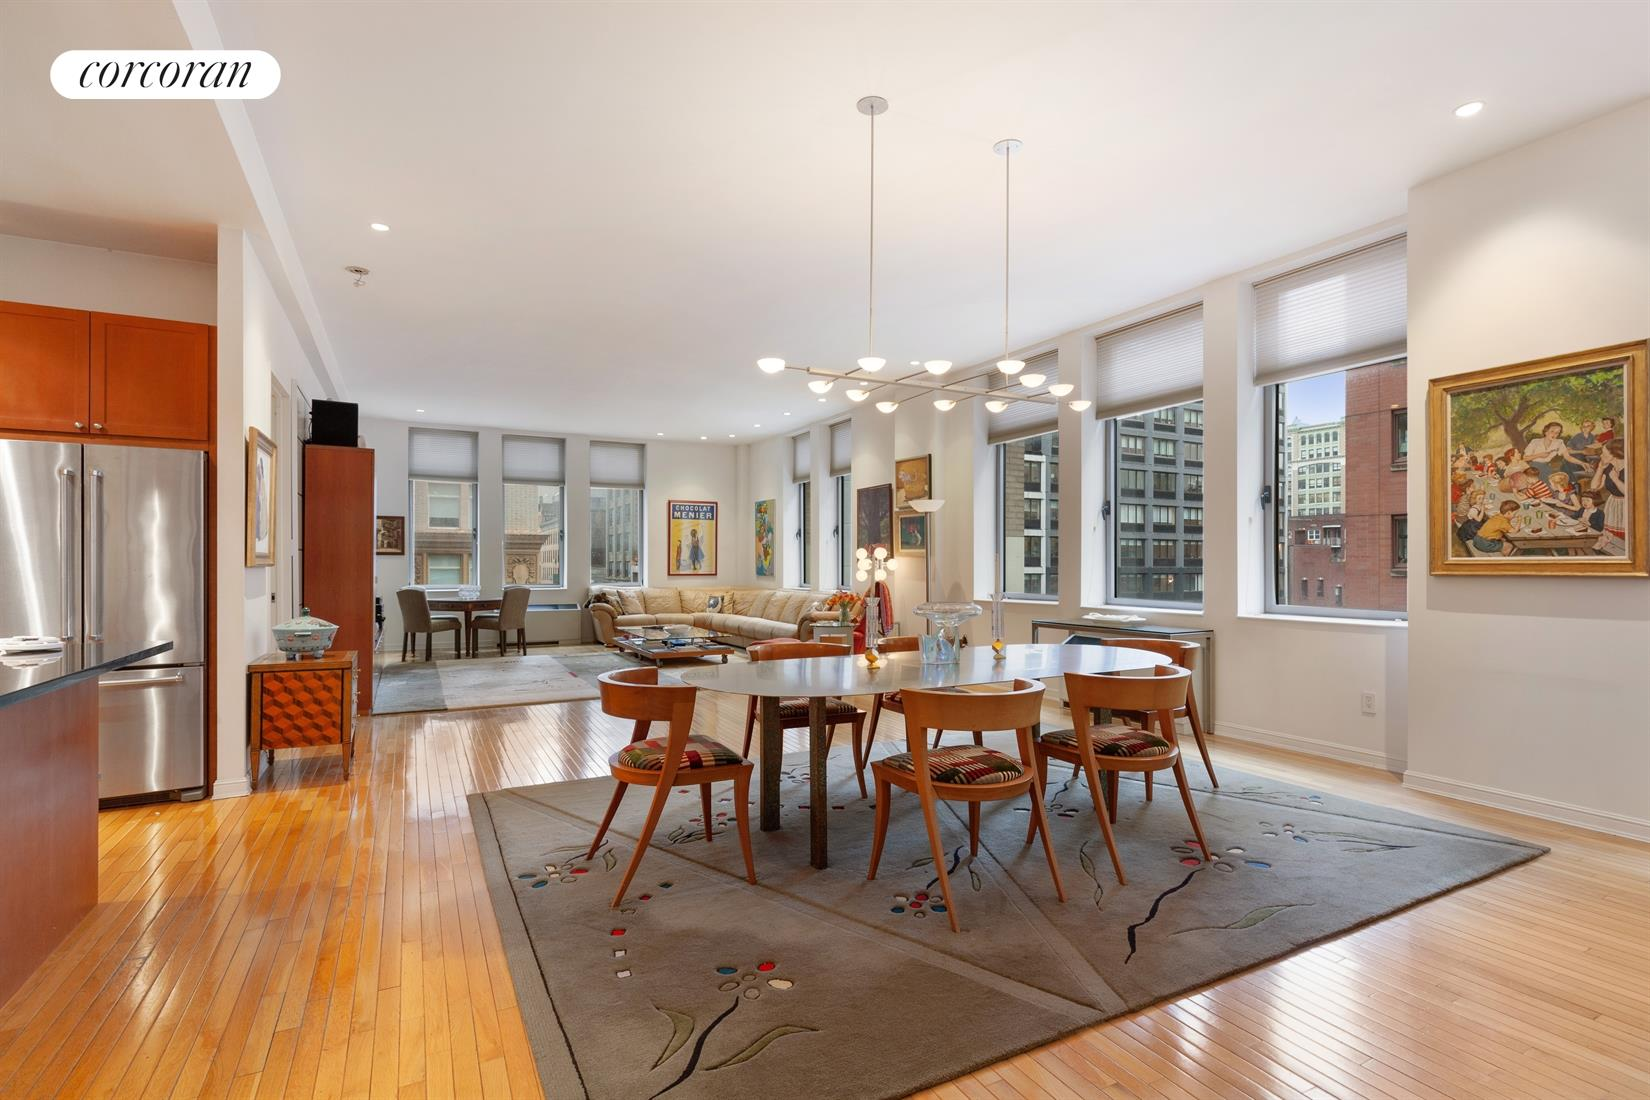 "This Chelsea Mercantile loft occupies the most coveted corner of the building. The living/dining room measures  approximately 44' long by 20' wide, features 9 enormous windows and, the soaring ceiling height of 10'6"" give it a truly grand scale. There are 2 over-sized bedrooms with ensuite baths and an additional guest bath (3 full baths in total).The entire apartment is sun drenched with light from the south and east. A well configured open kitchen includes stone counters and wood cabinetry. A washer/dryer can easily be added to the existing hookups. And, a storage cage is included. Building amenities include a 24 hour doorman and concierge, conference/meeting room, clothing valet, a stunning roof deck, a state of the art gym, and playroom. Whole Foods is just an elevator ride away. There is also a 24 hour parking garage with direct access. Additional assessment for façade repair $475 ending 2/2022"